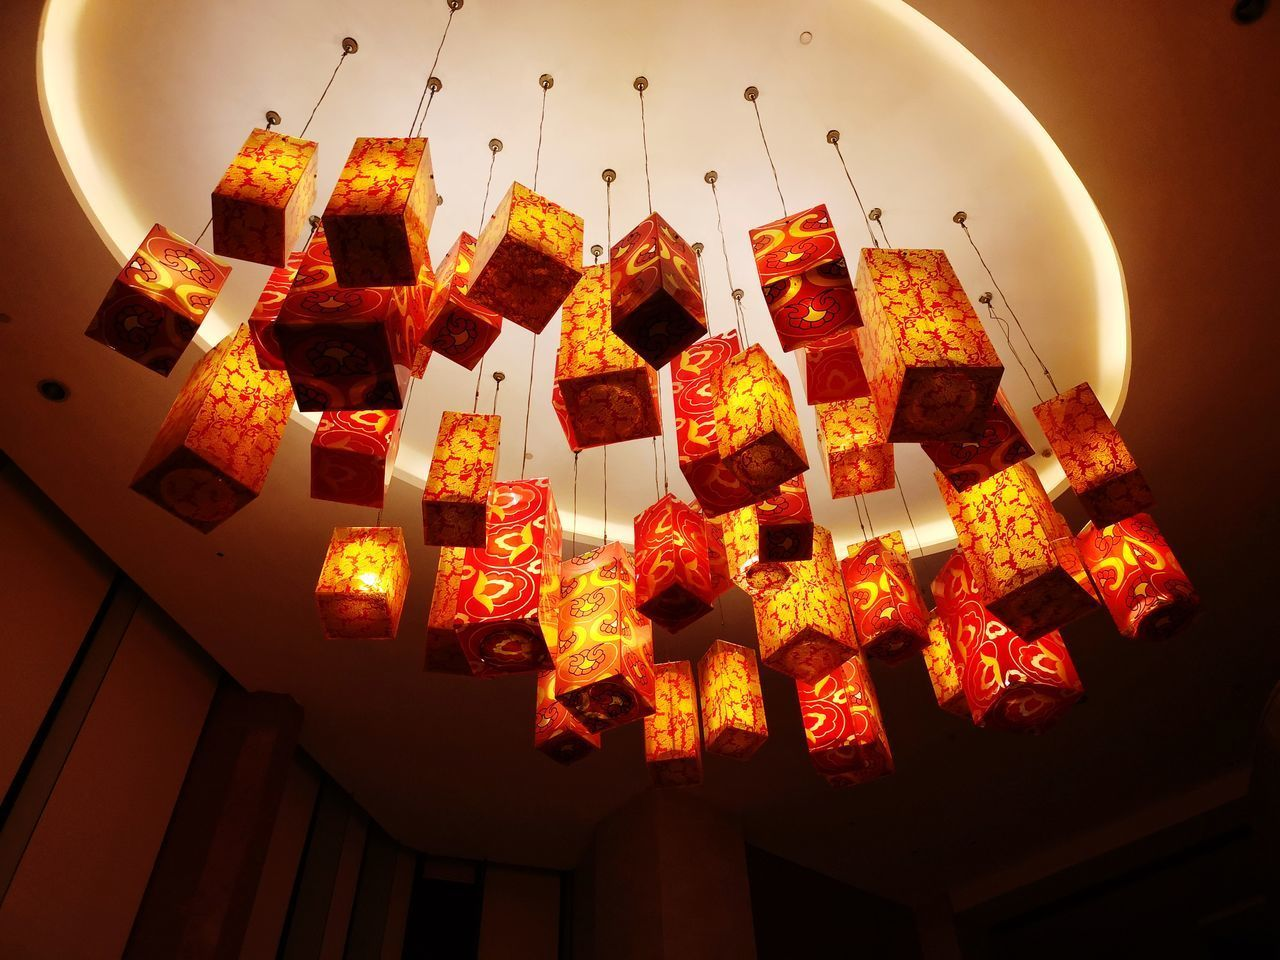 LOW ANGLE VIEW OF ILLUMINATED LANTERNS HANGING IN TRADITIONAL